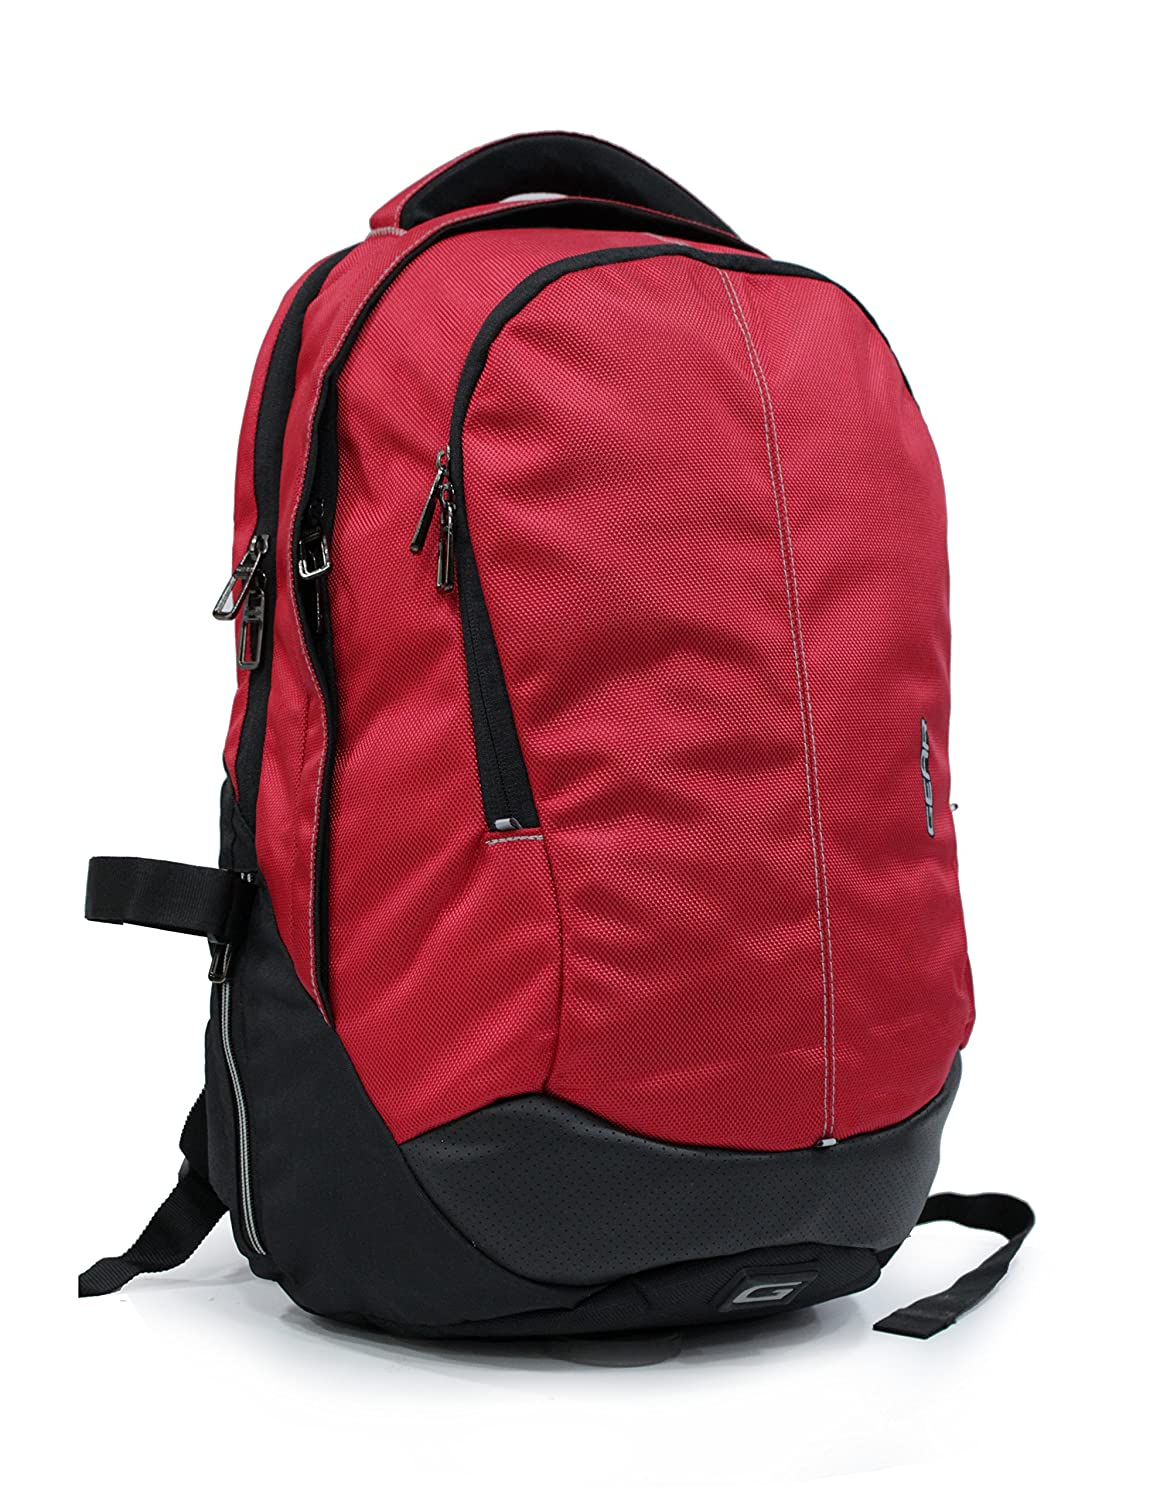 9f40234e21 Gear Outlander 3 37 Ltrs Red and Black Laptop Backpack (LBPOUTLR30901)  Gear  design studio  Amazon.in  Bags